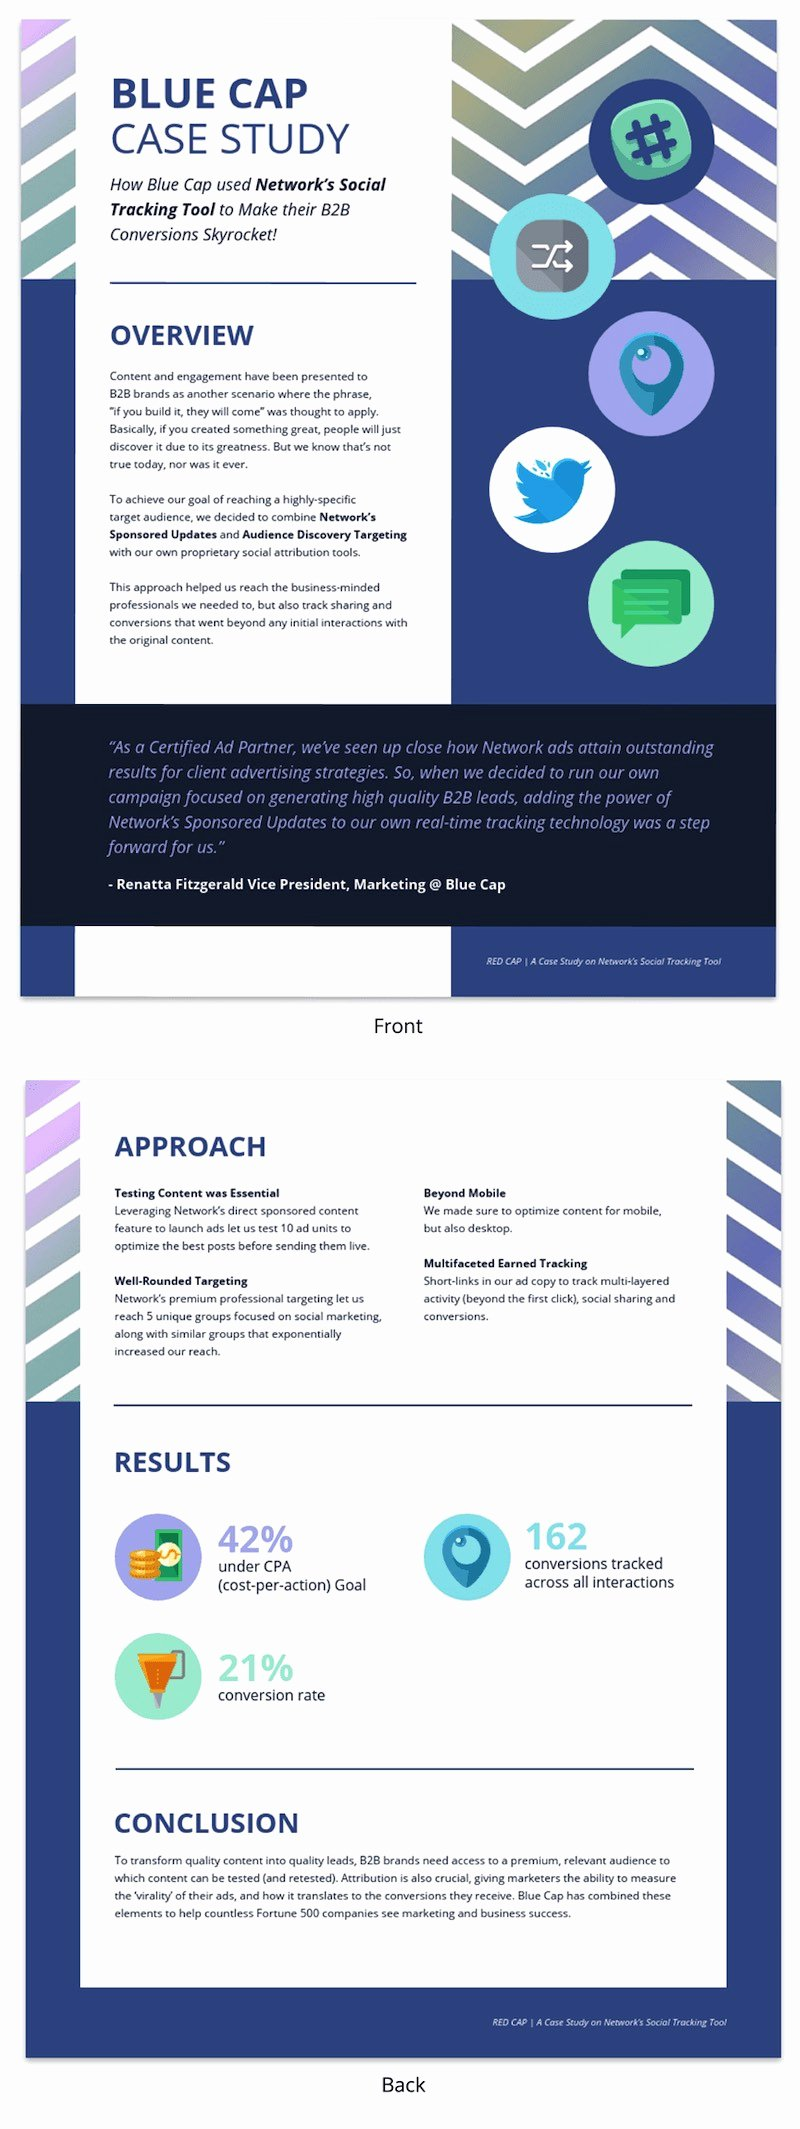 Business Report format Template Beautiful 30 Business Report Templates Every Business Needs Venngage